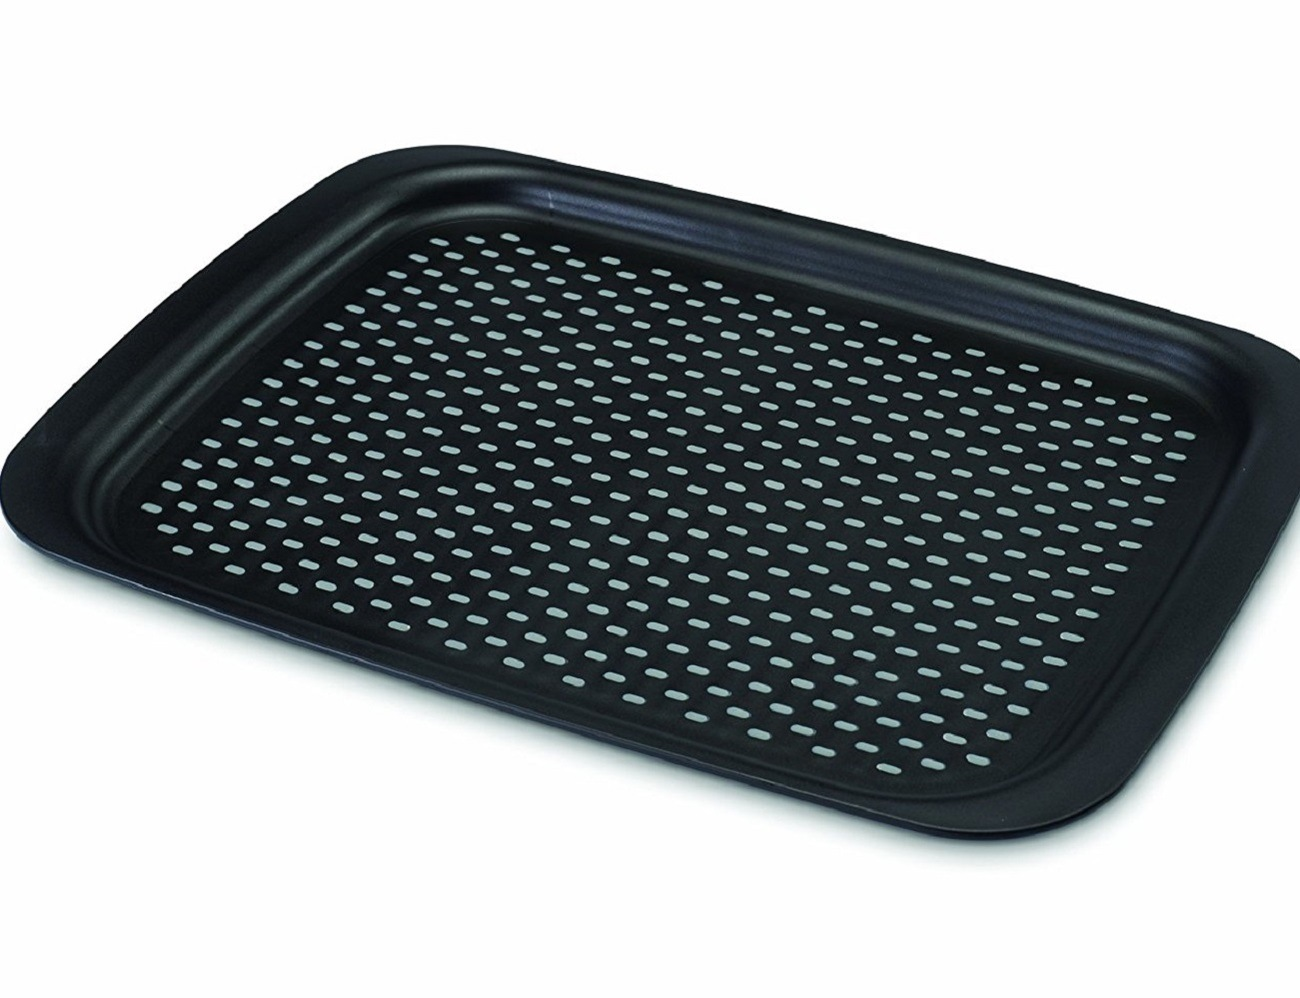 Joseph Joseph Grip Non-Slip Serving Tray